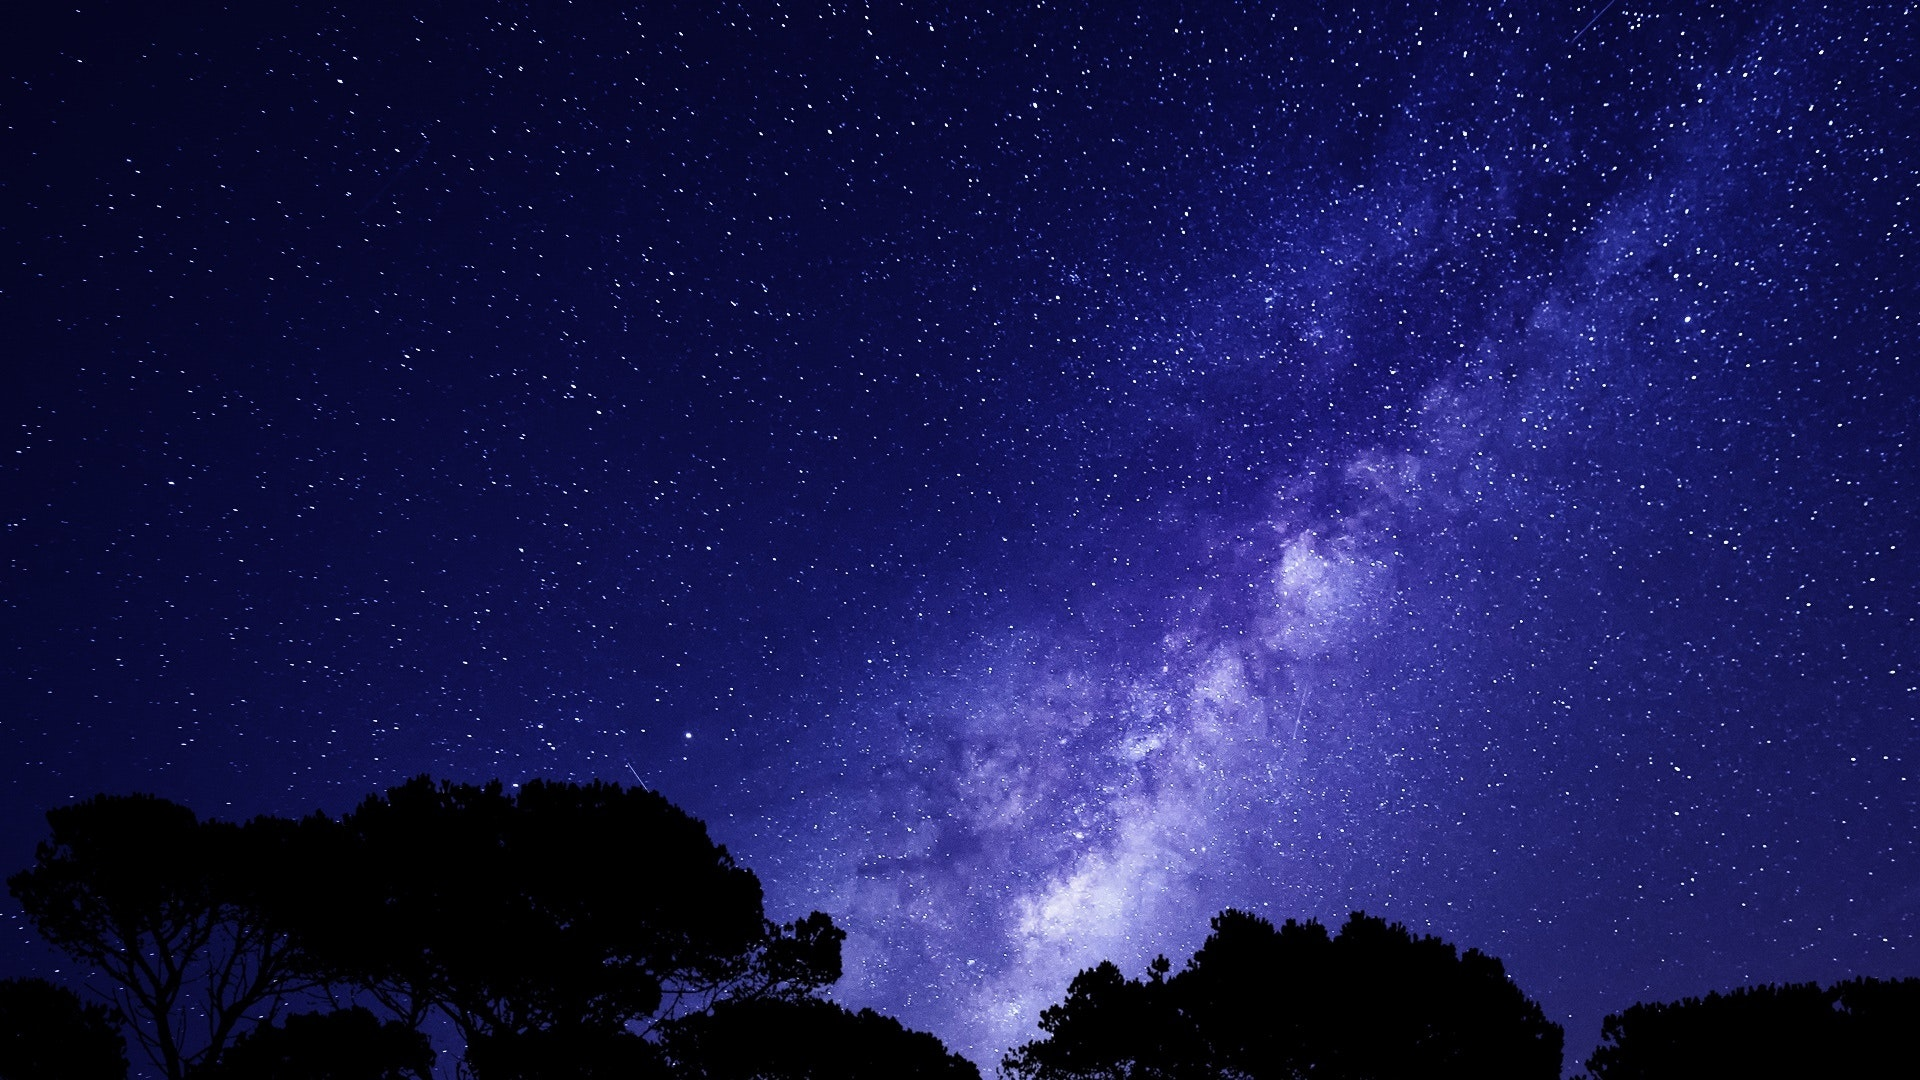 Starry Night Sky Wallpaper 4k   1920x1080   Download HD Wallpaper